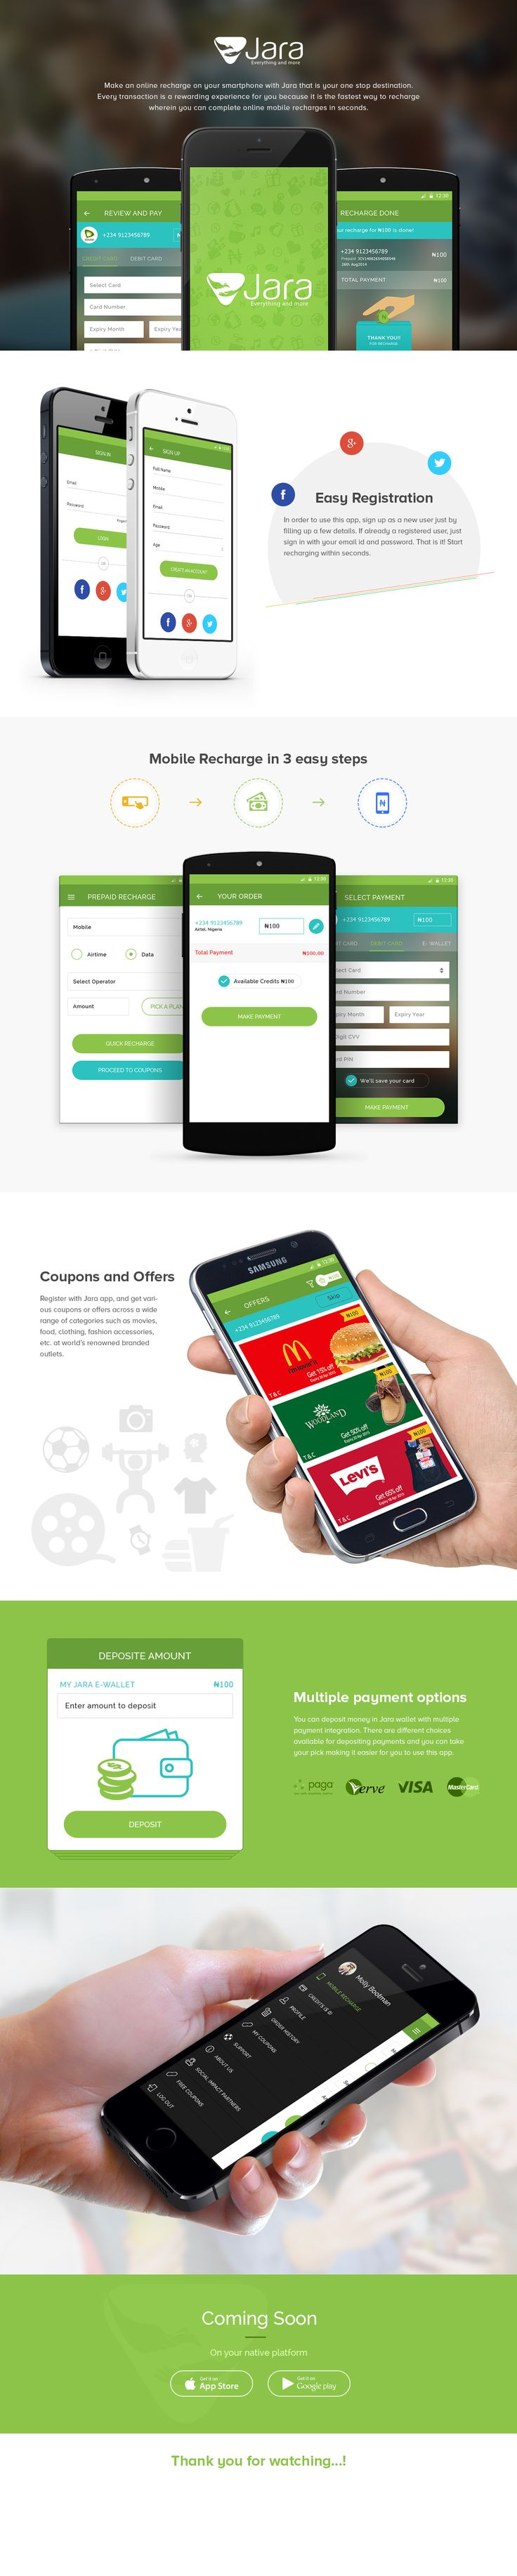 Mobile Recharge App on Behance